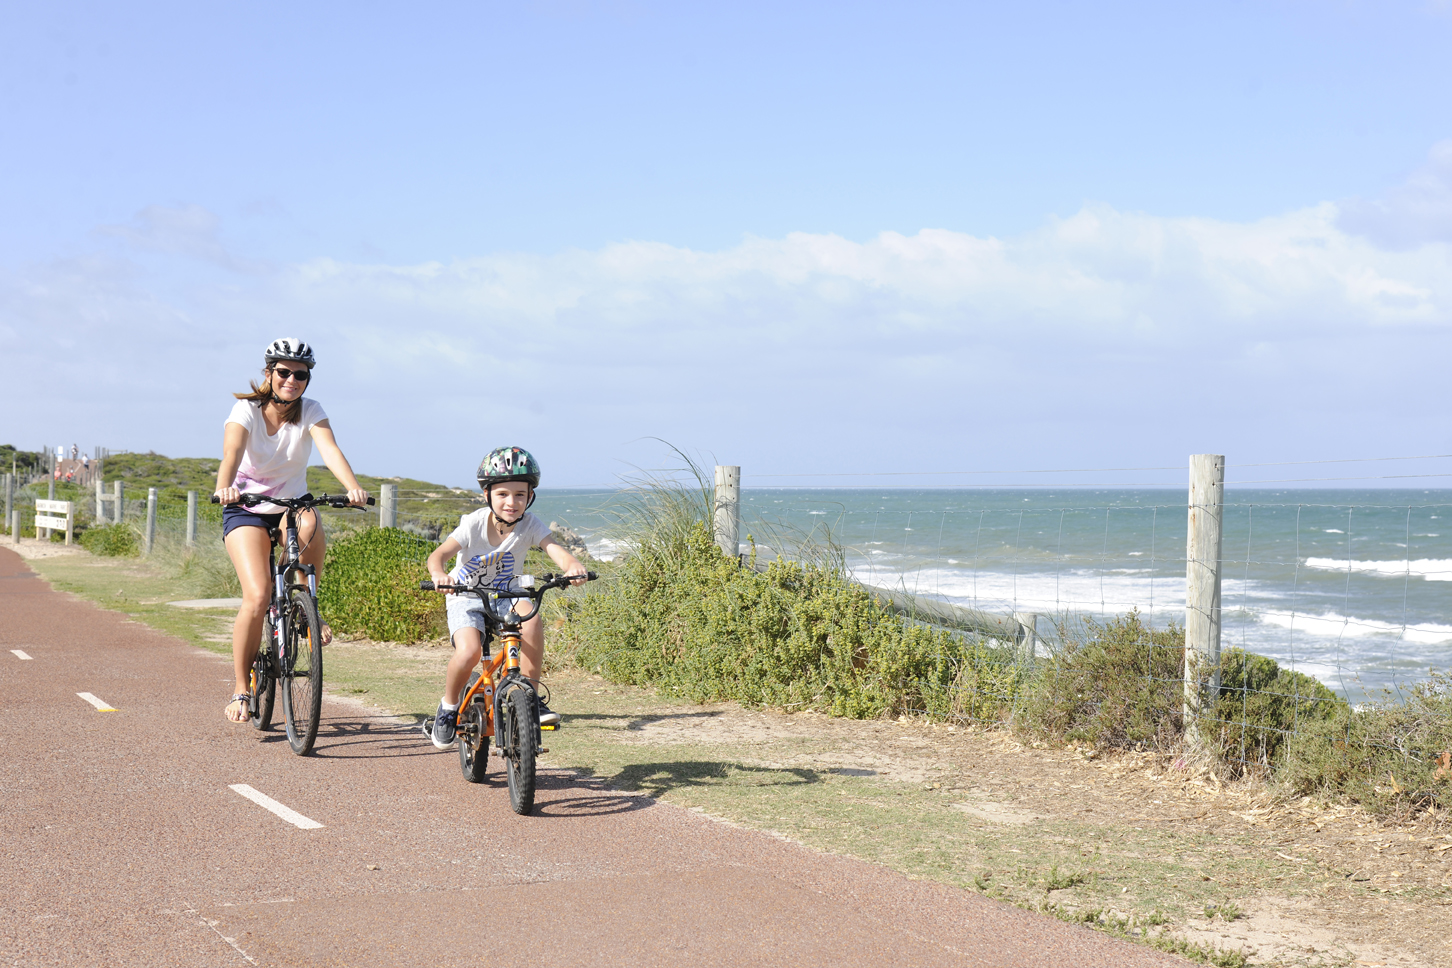 fe373ac5730 The Sunset Coast coastal path is an easy, half day family ride that runs  from Marmion, south of Hillarys Boat Harbour to Burns Beach.